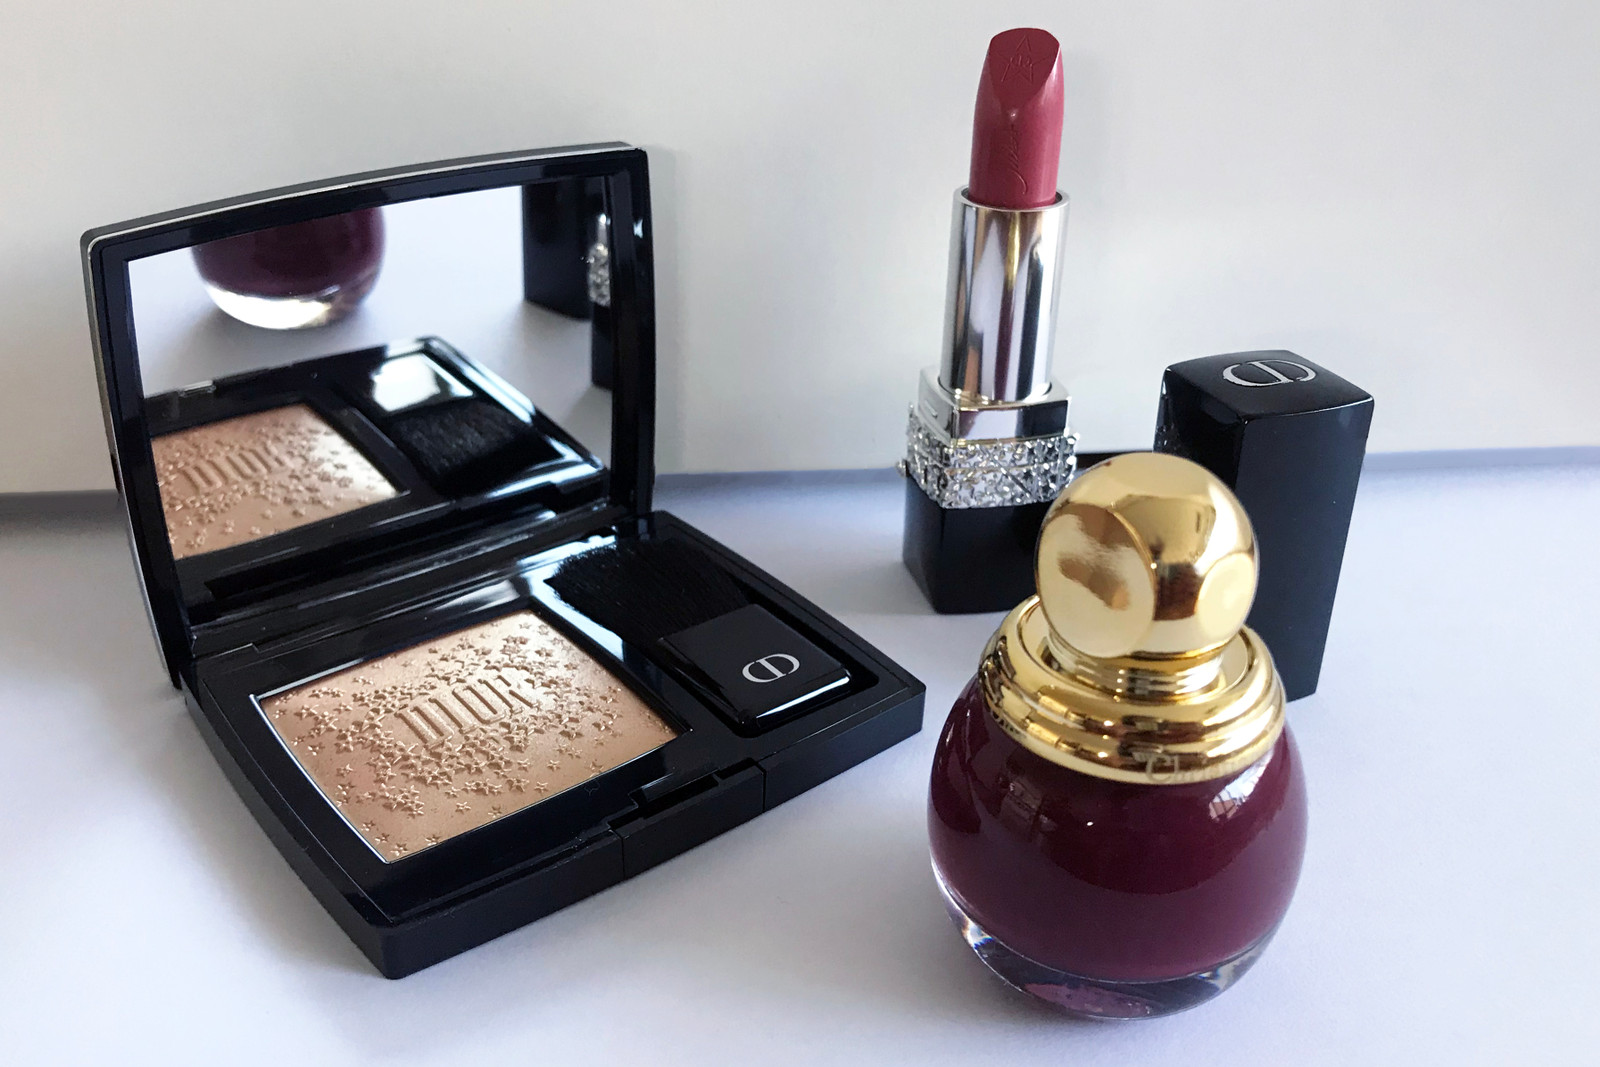 Dior Makeup Holiday Beauty Collection Review Lipstick Nail Polish Highlighter Blush